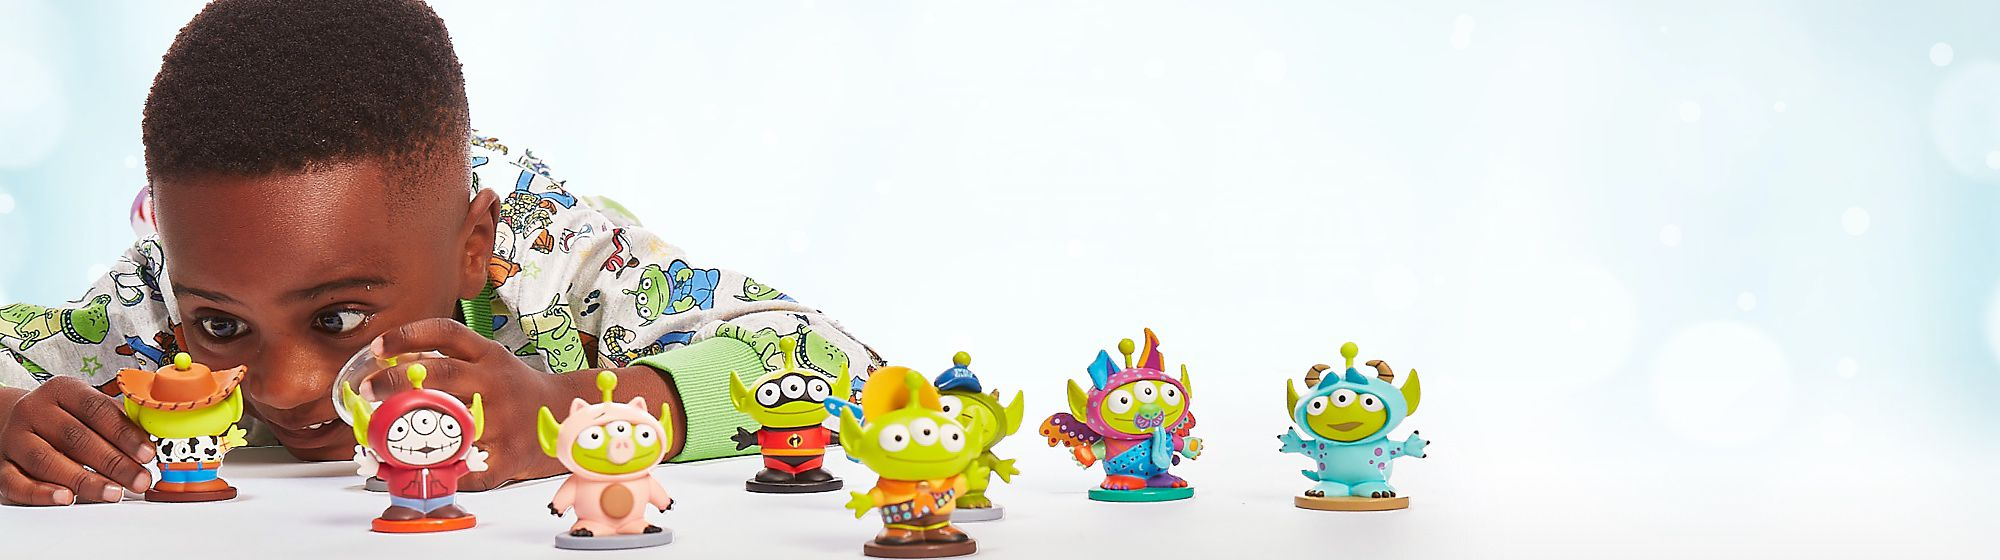 Deluxe Figurine Playsets 1 for £25.95 | 2 for £45 | 3 for £55